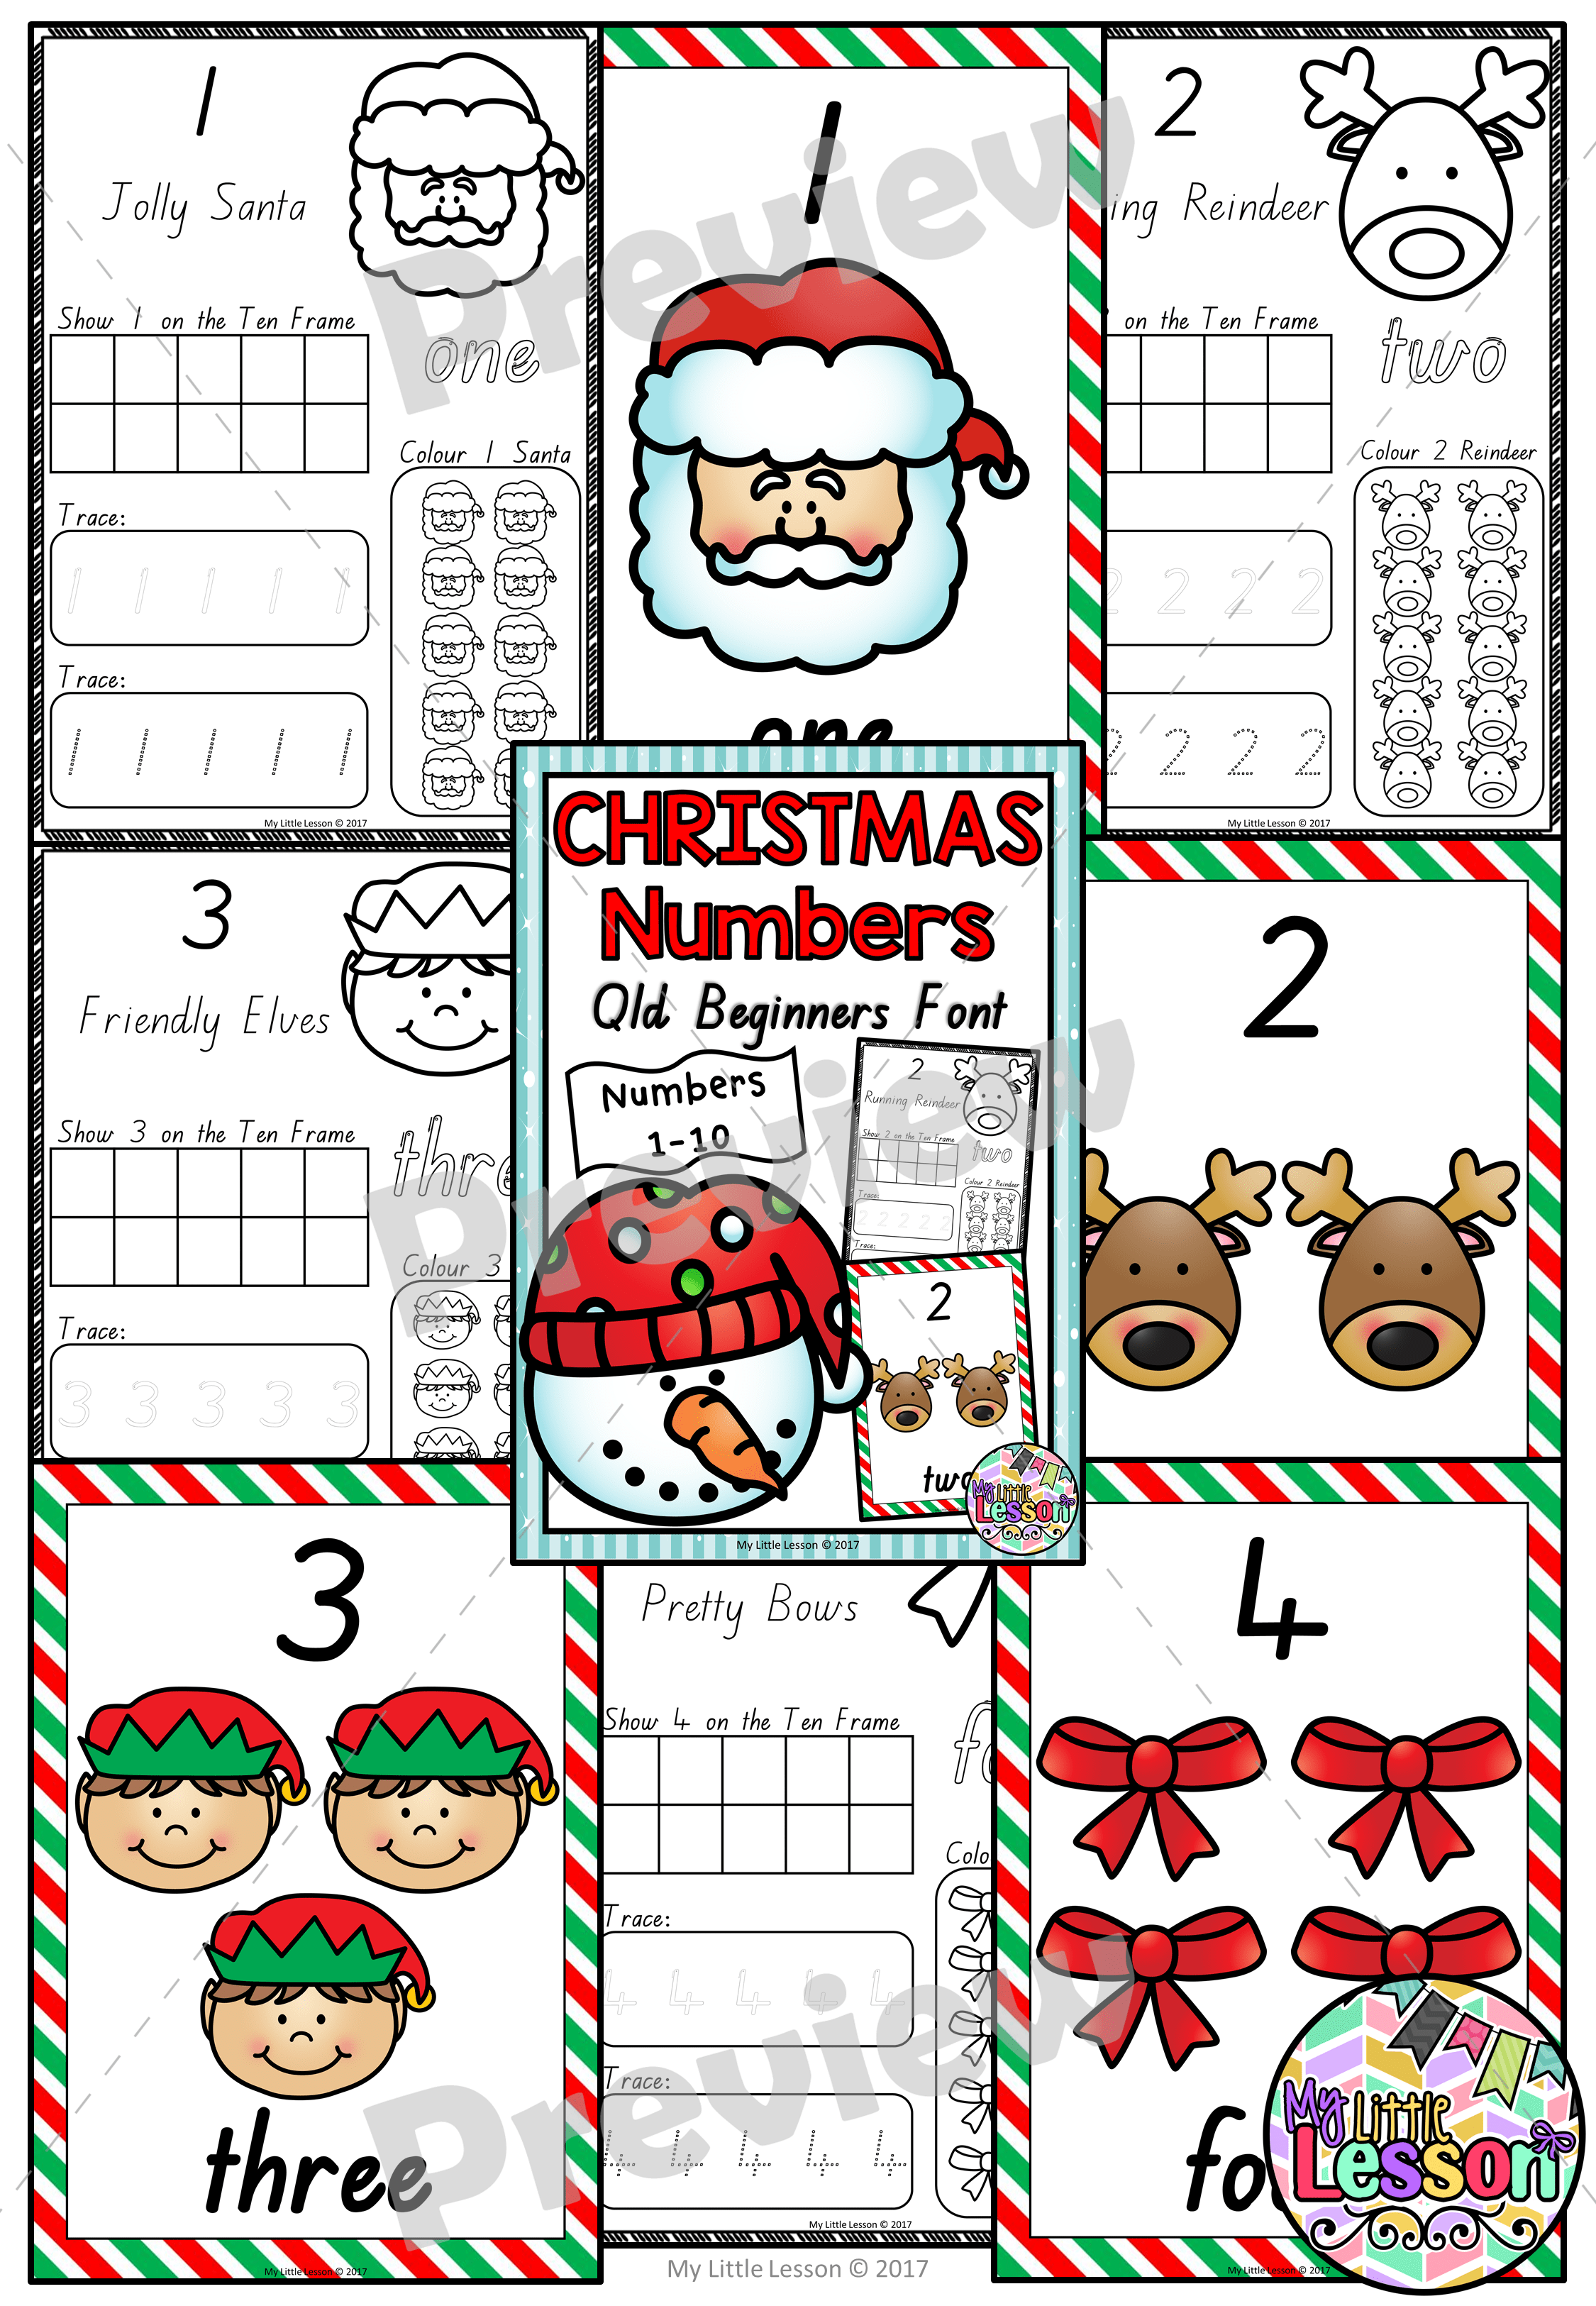 Christmas Numbers 1 10 Qld Beginners Font